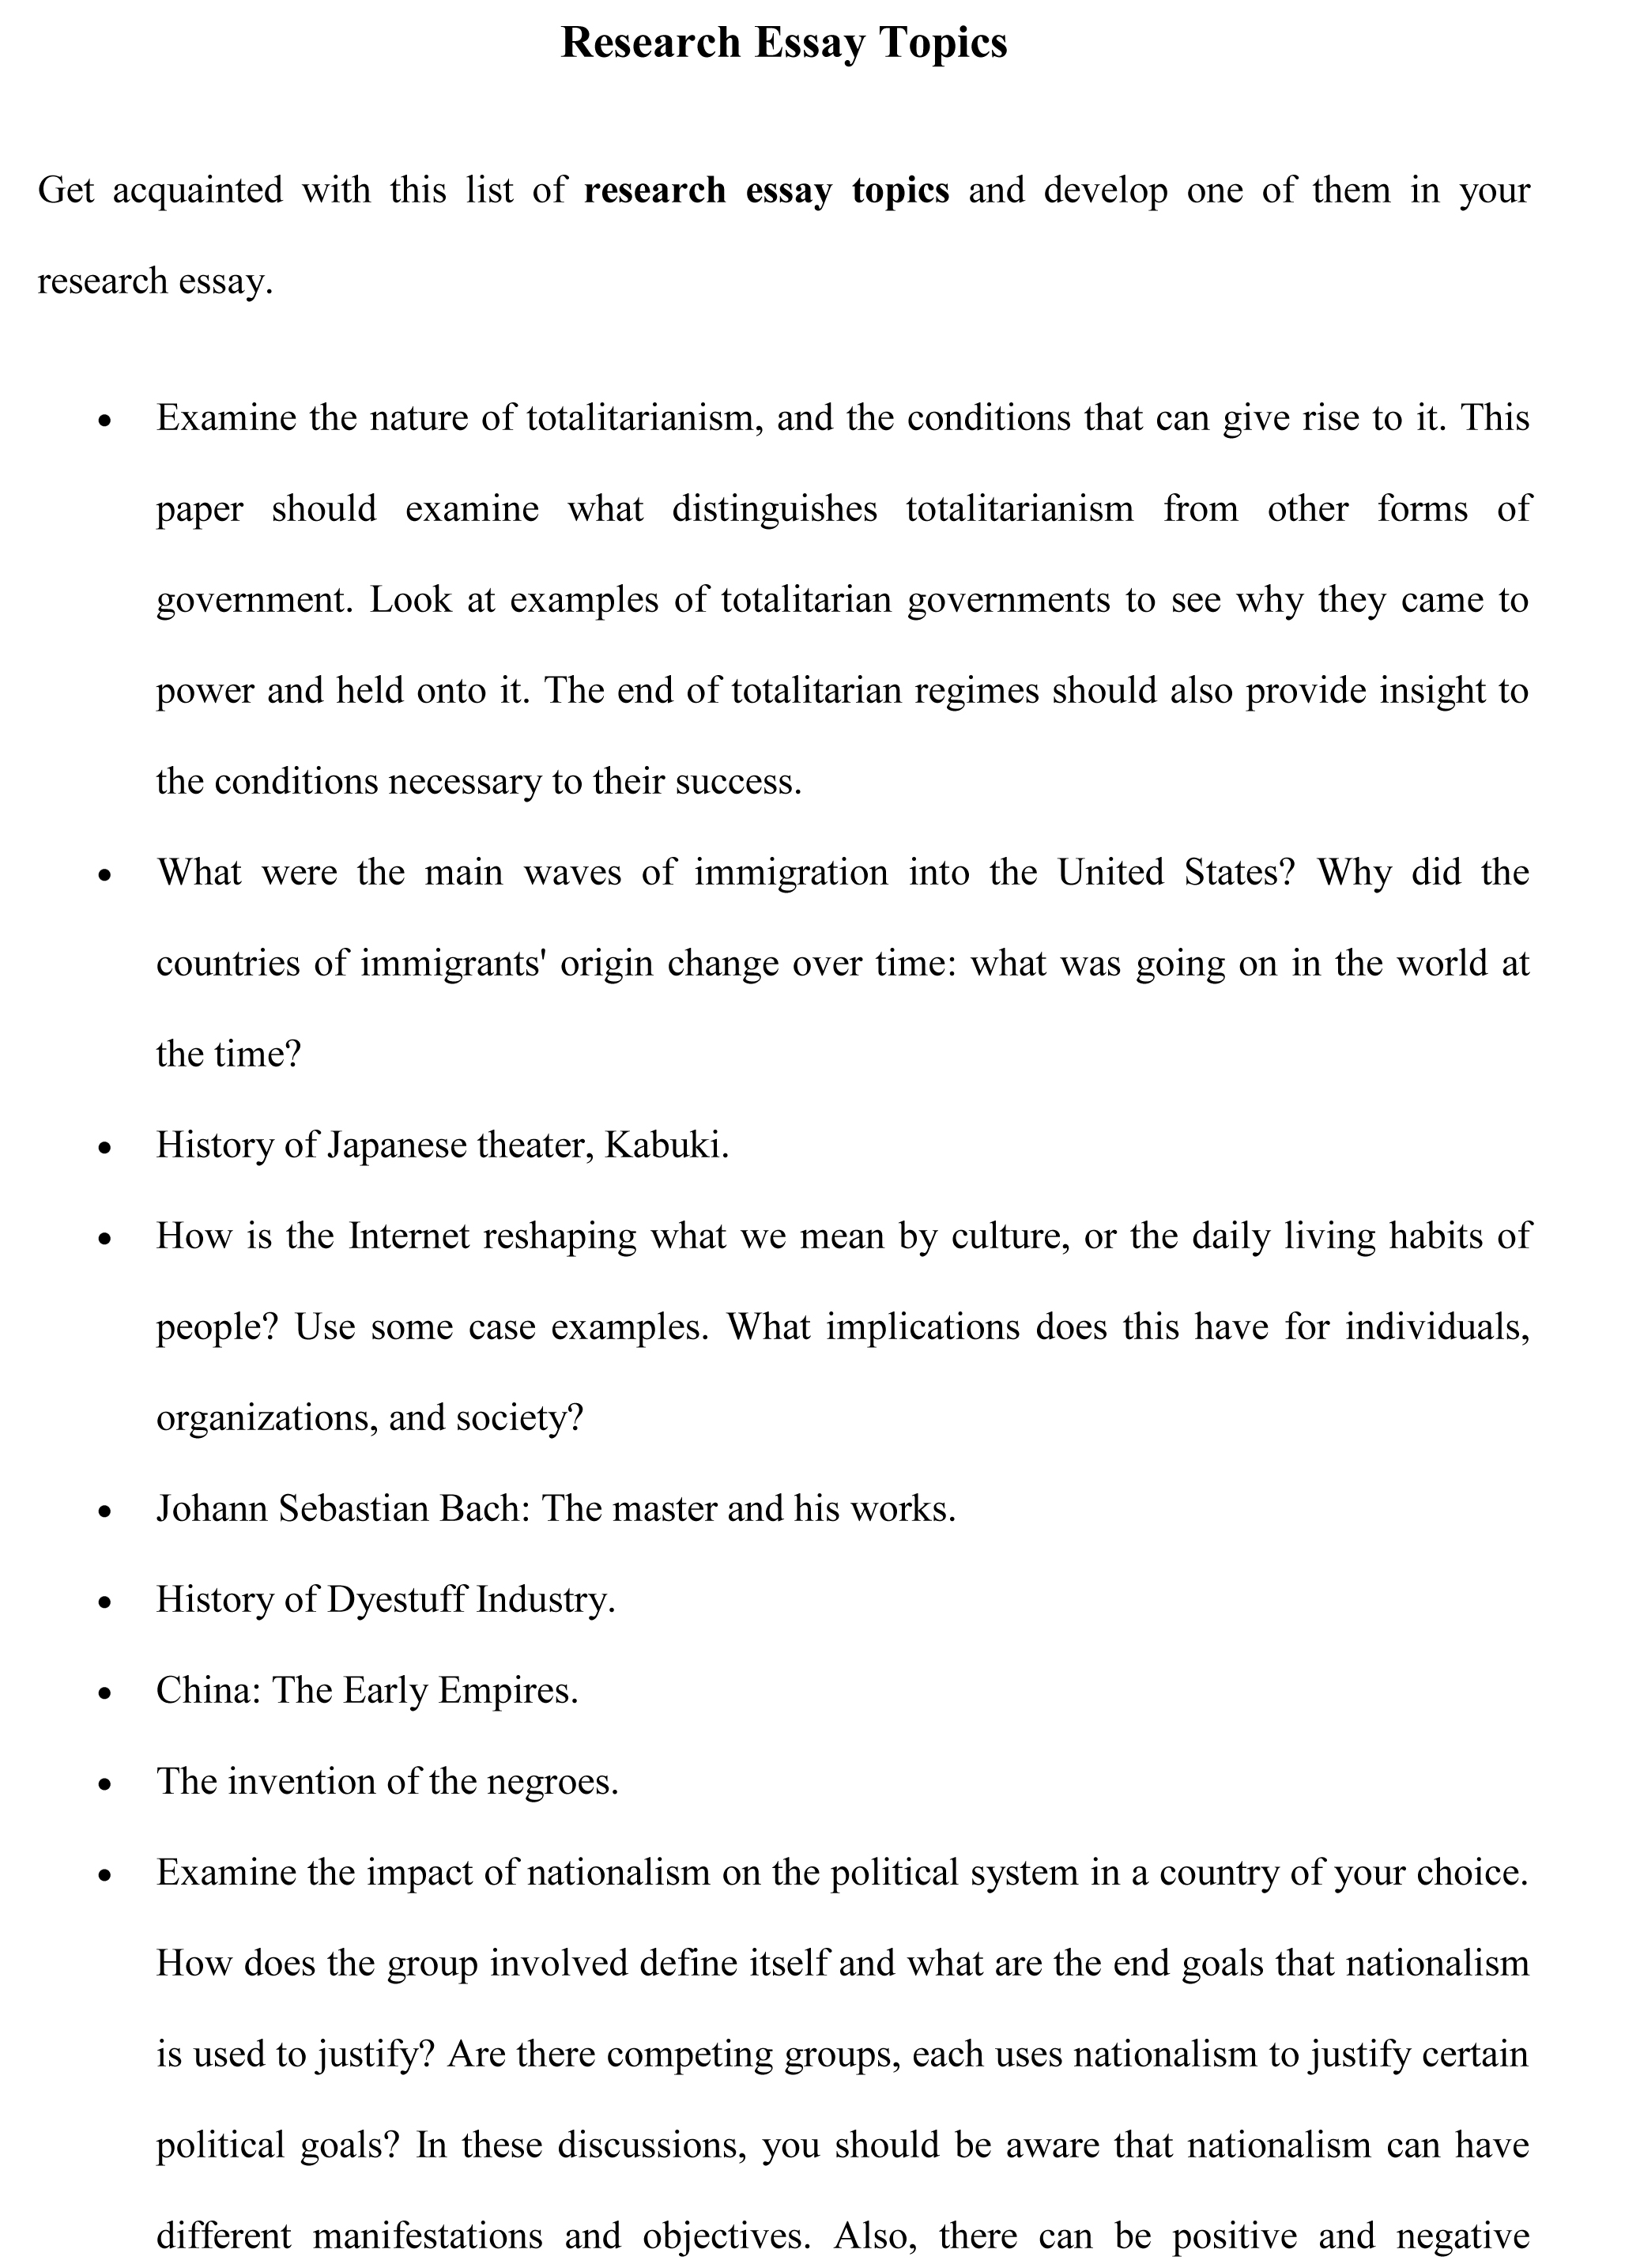 002 Research Paper Anthropology Of Religion Topics Essay Fearsome Full